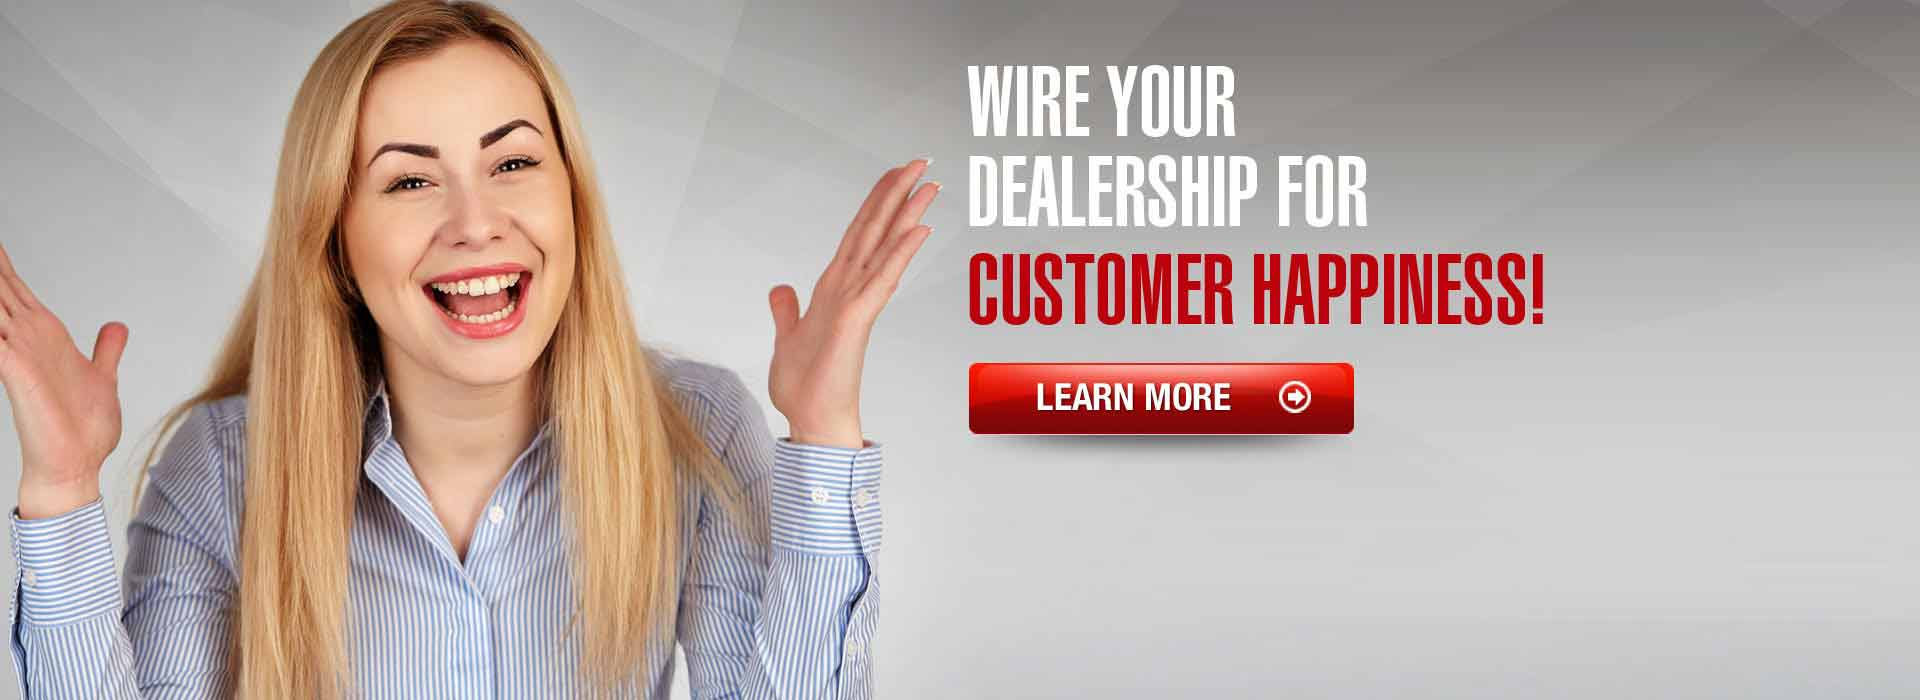 Wire your dealership for customer happiness!